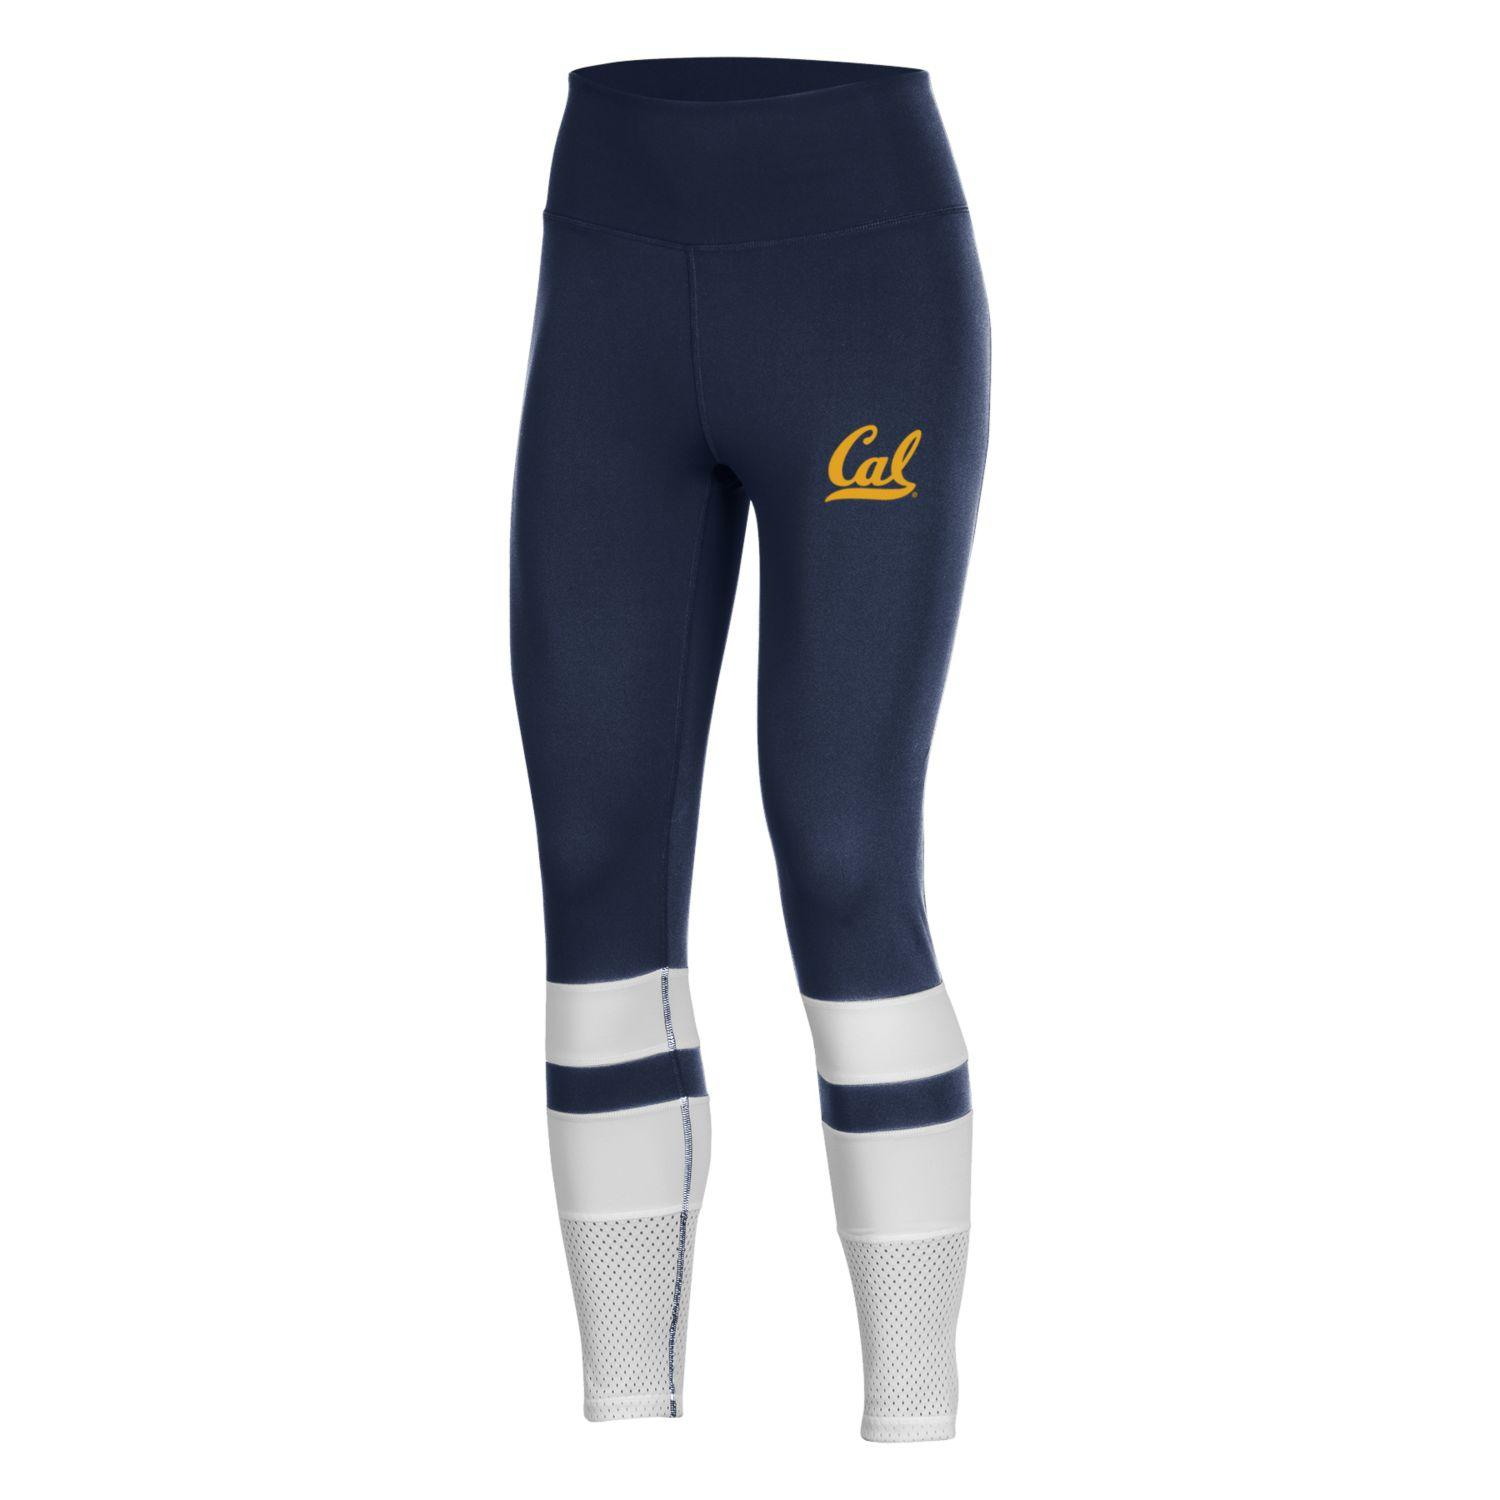 W F20 SMU Gameday 7/8 Leggings